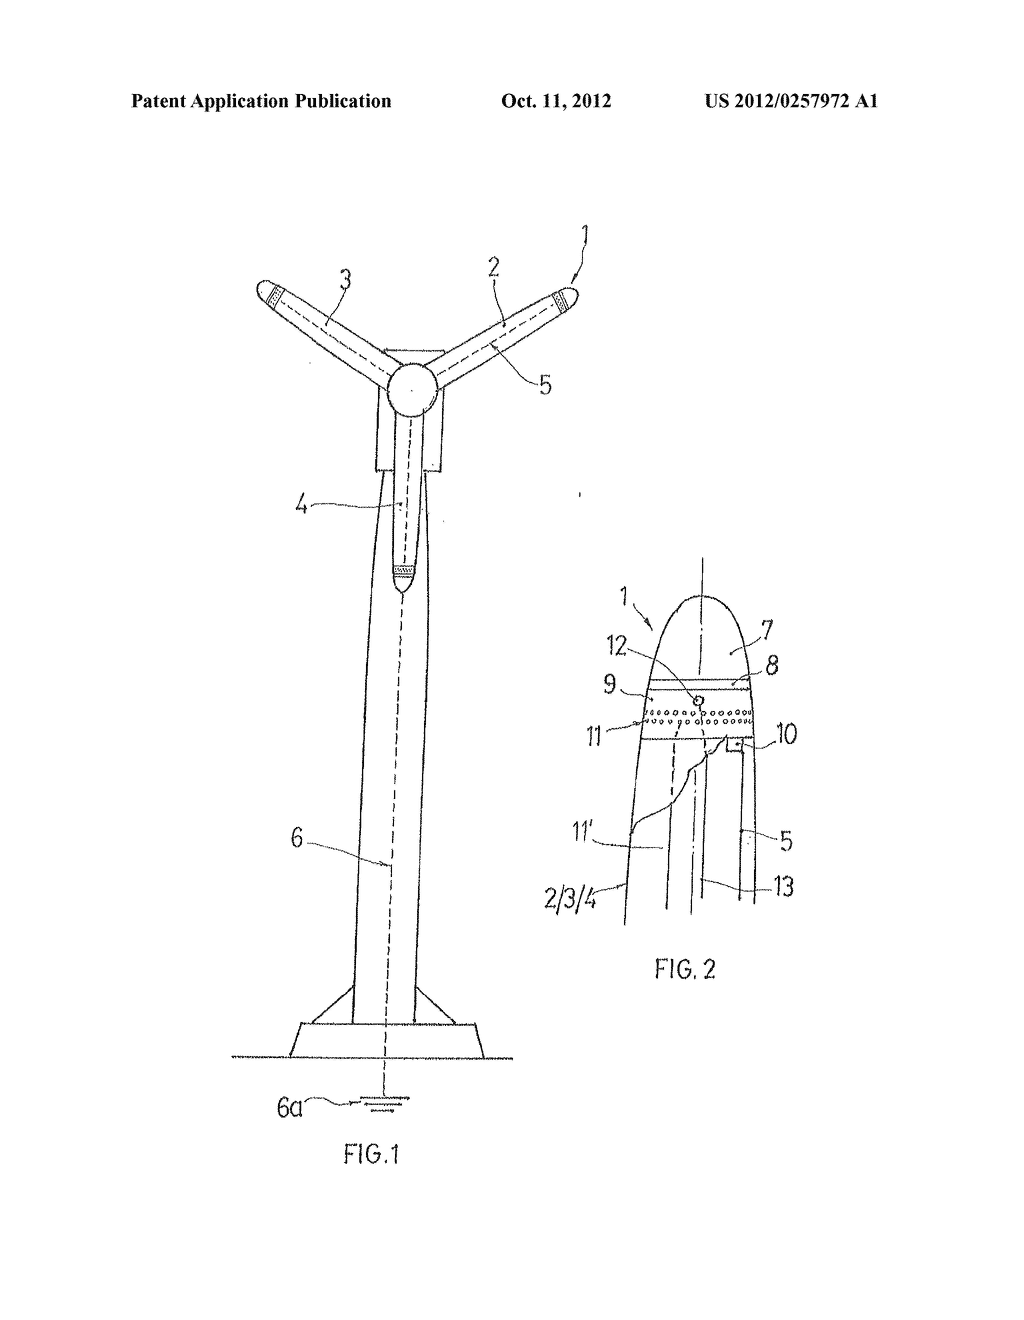 electrostatic charge de-ionizing lightning rod for protection of wind  turbine generator blades and wind turbine generator with blades provide  with